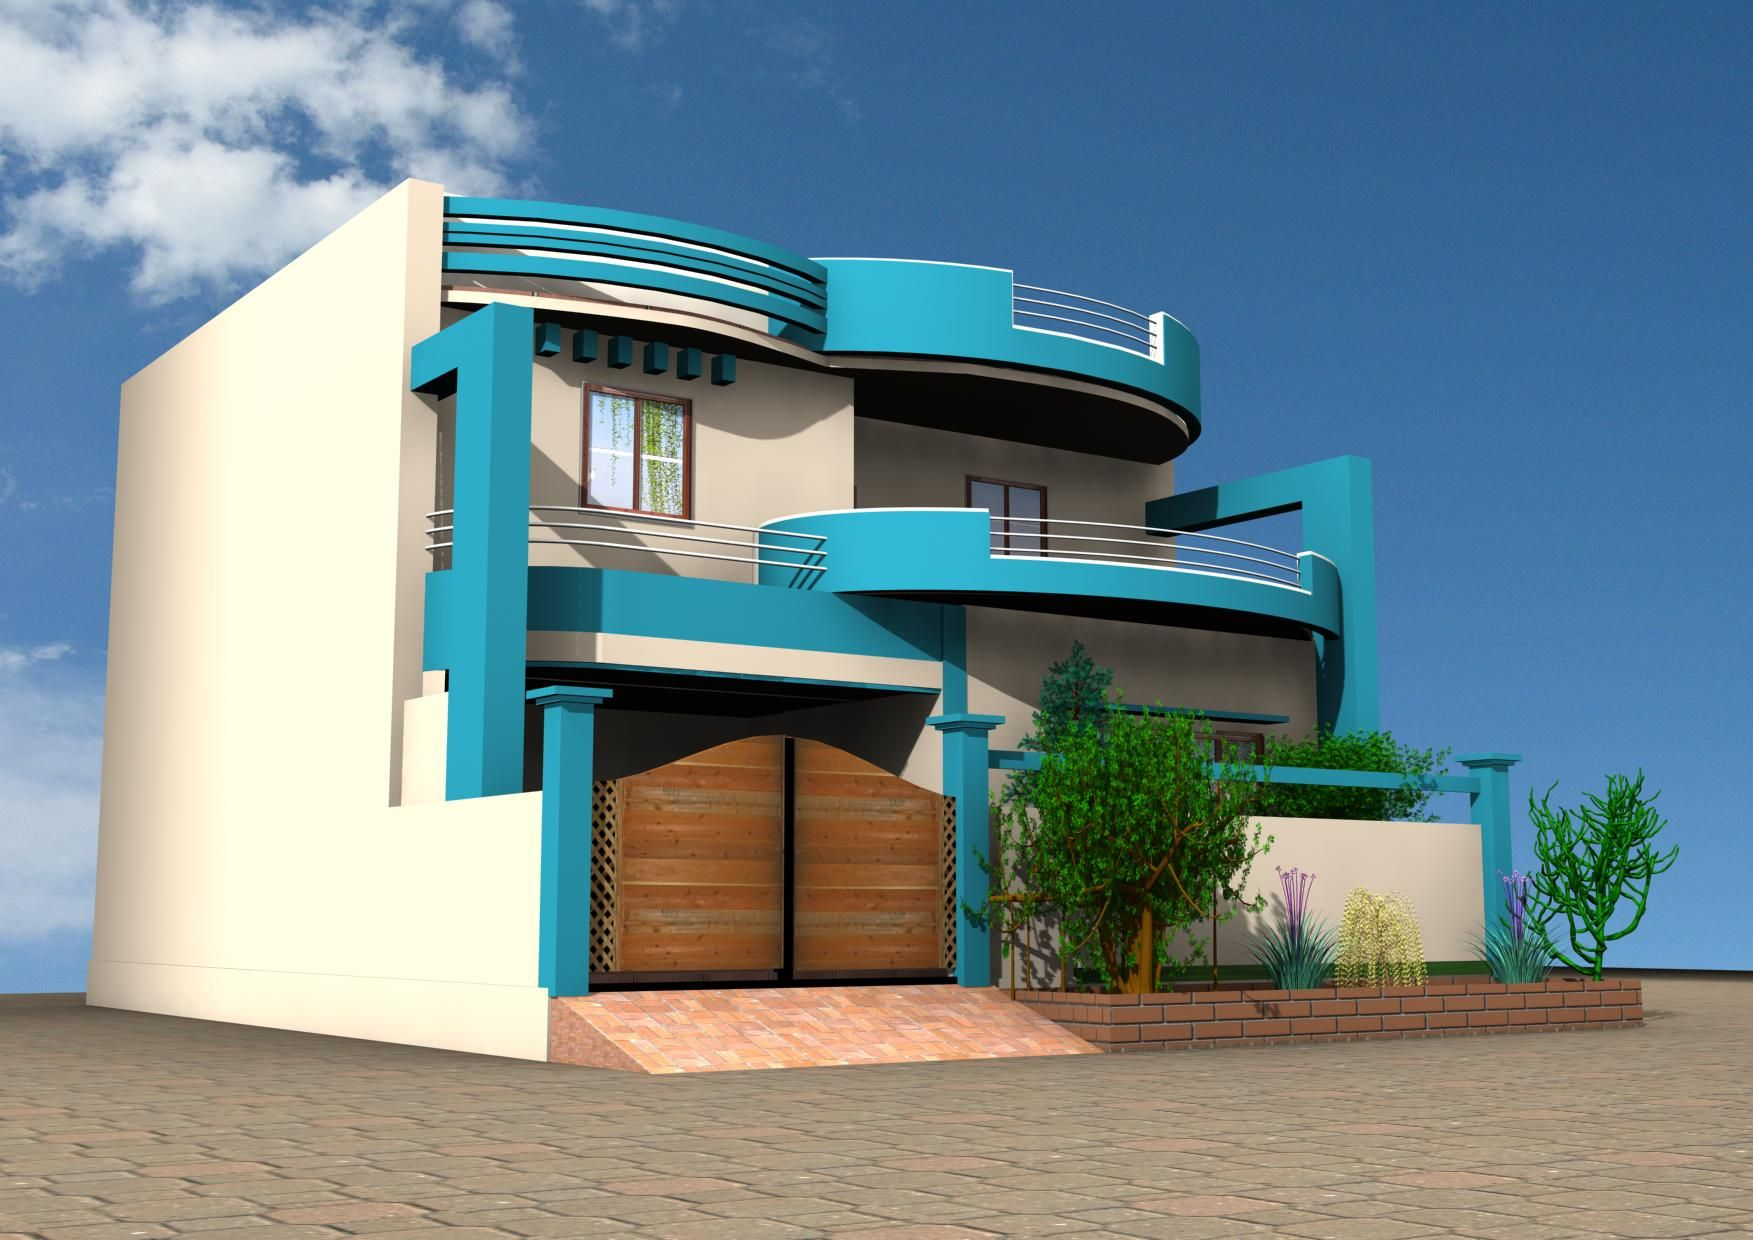 3d home design images hd 1080p Free home design software download